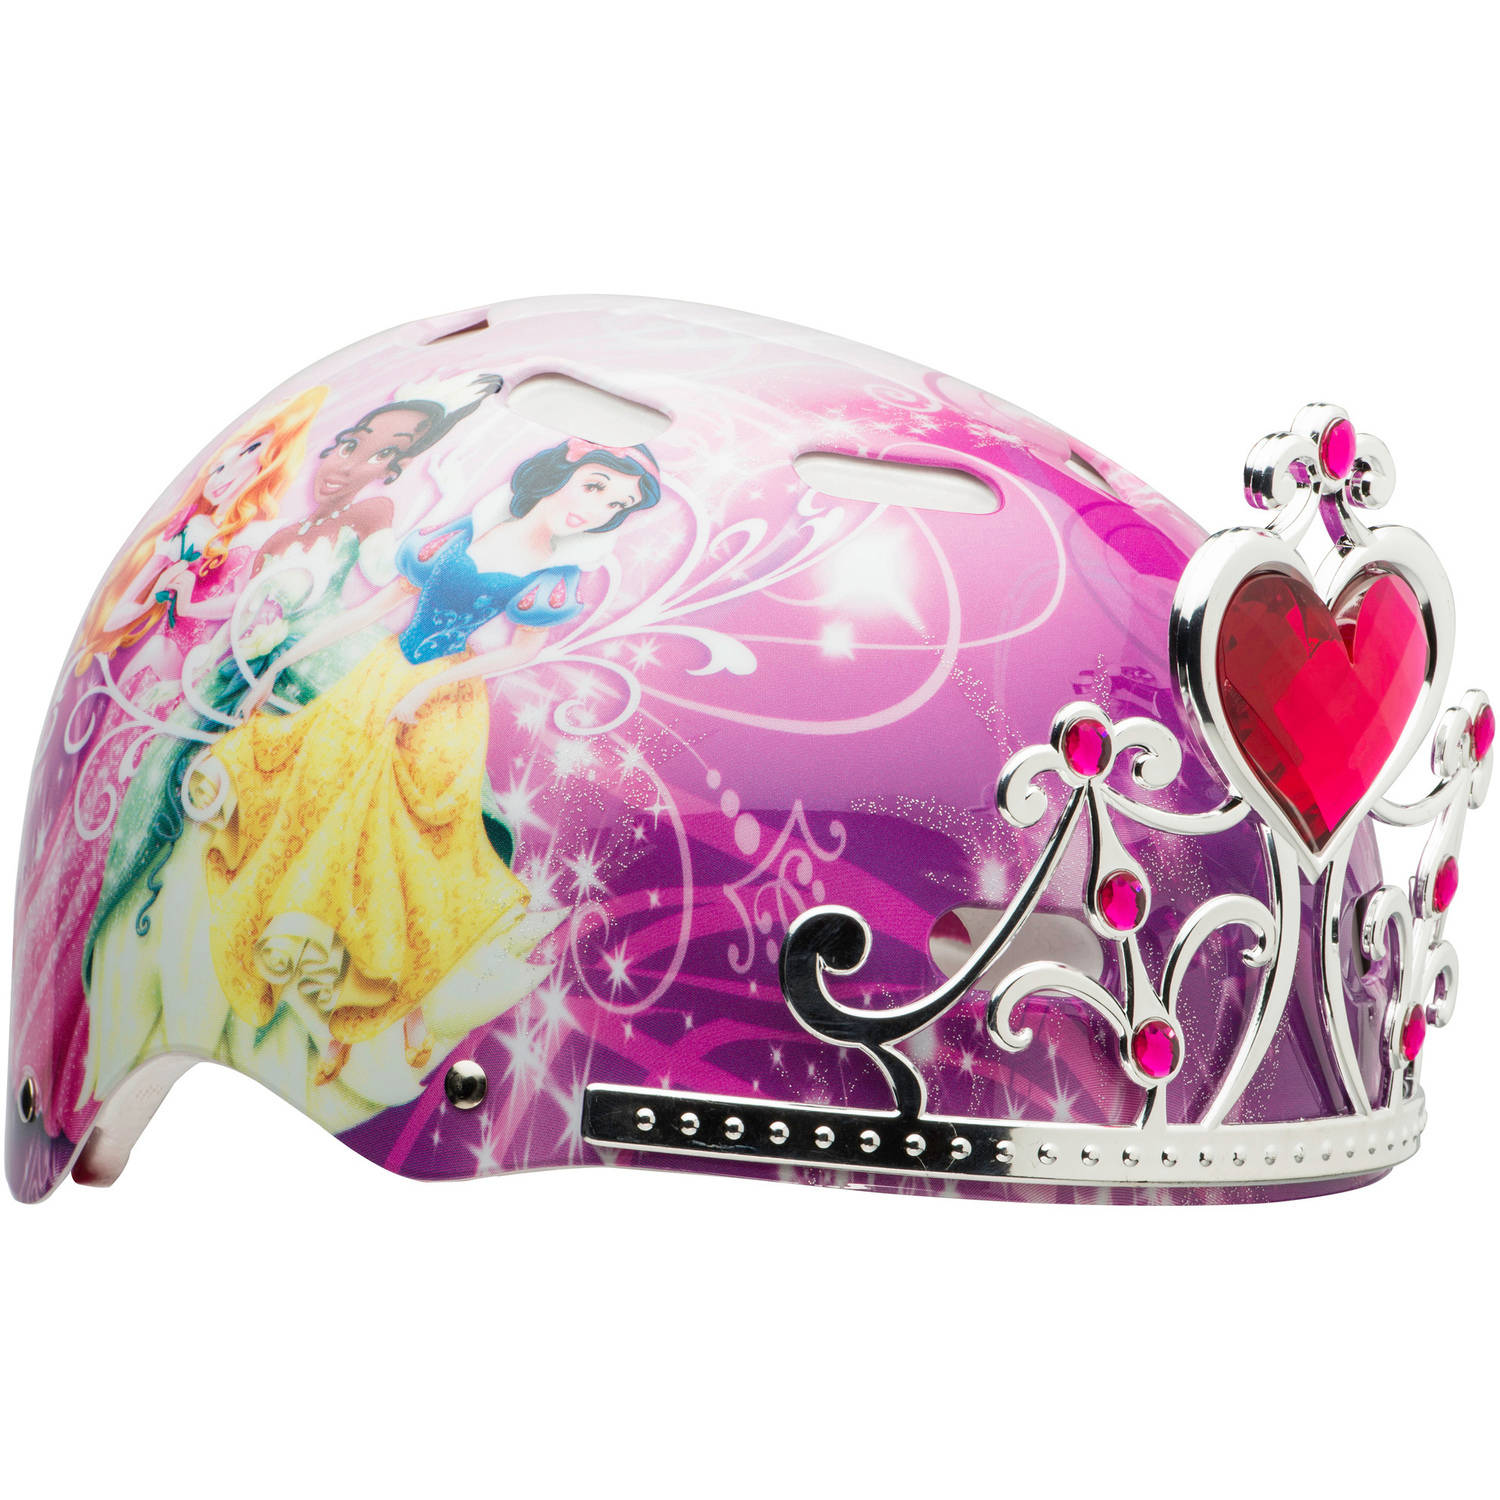 Bell Sports Disney Princess Child 3D Helmet, Pink